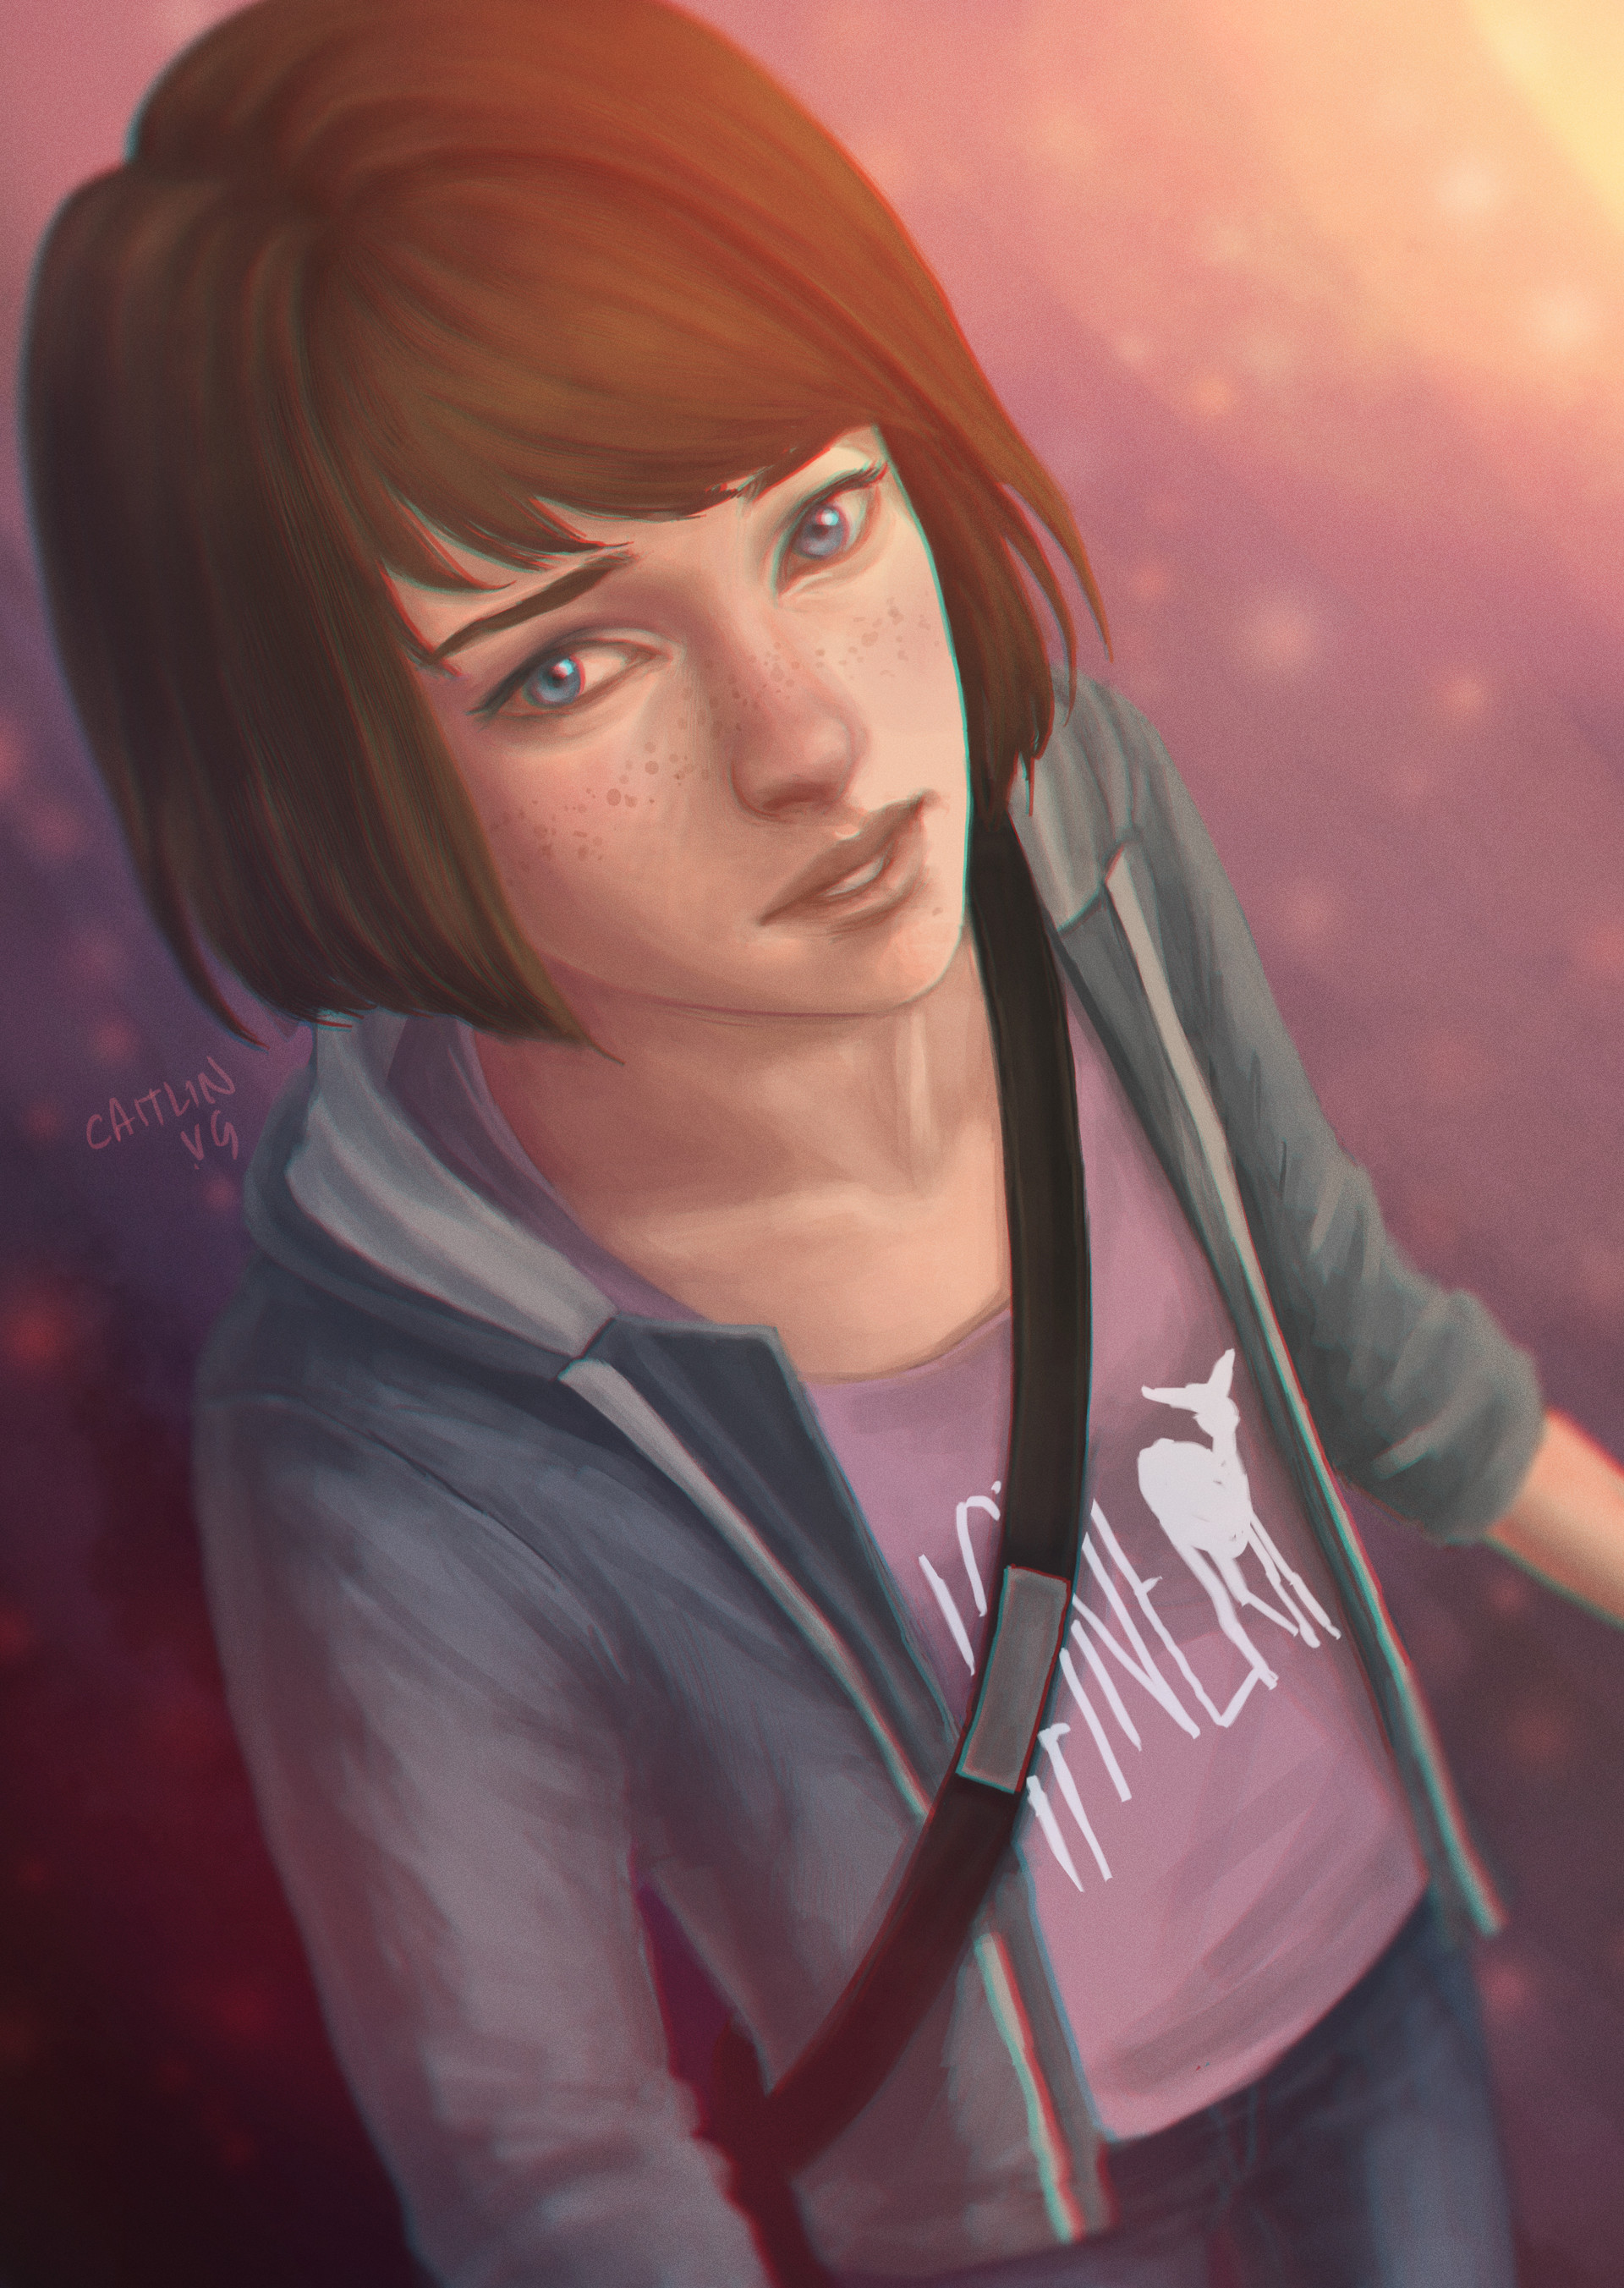 Max-Caulfield-Life-is-Strange-Игры-Игровой-арт-2785289.jpeg - Life is Strange